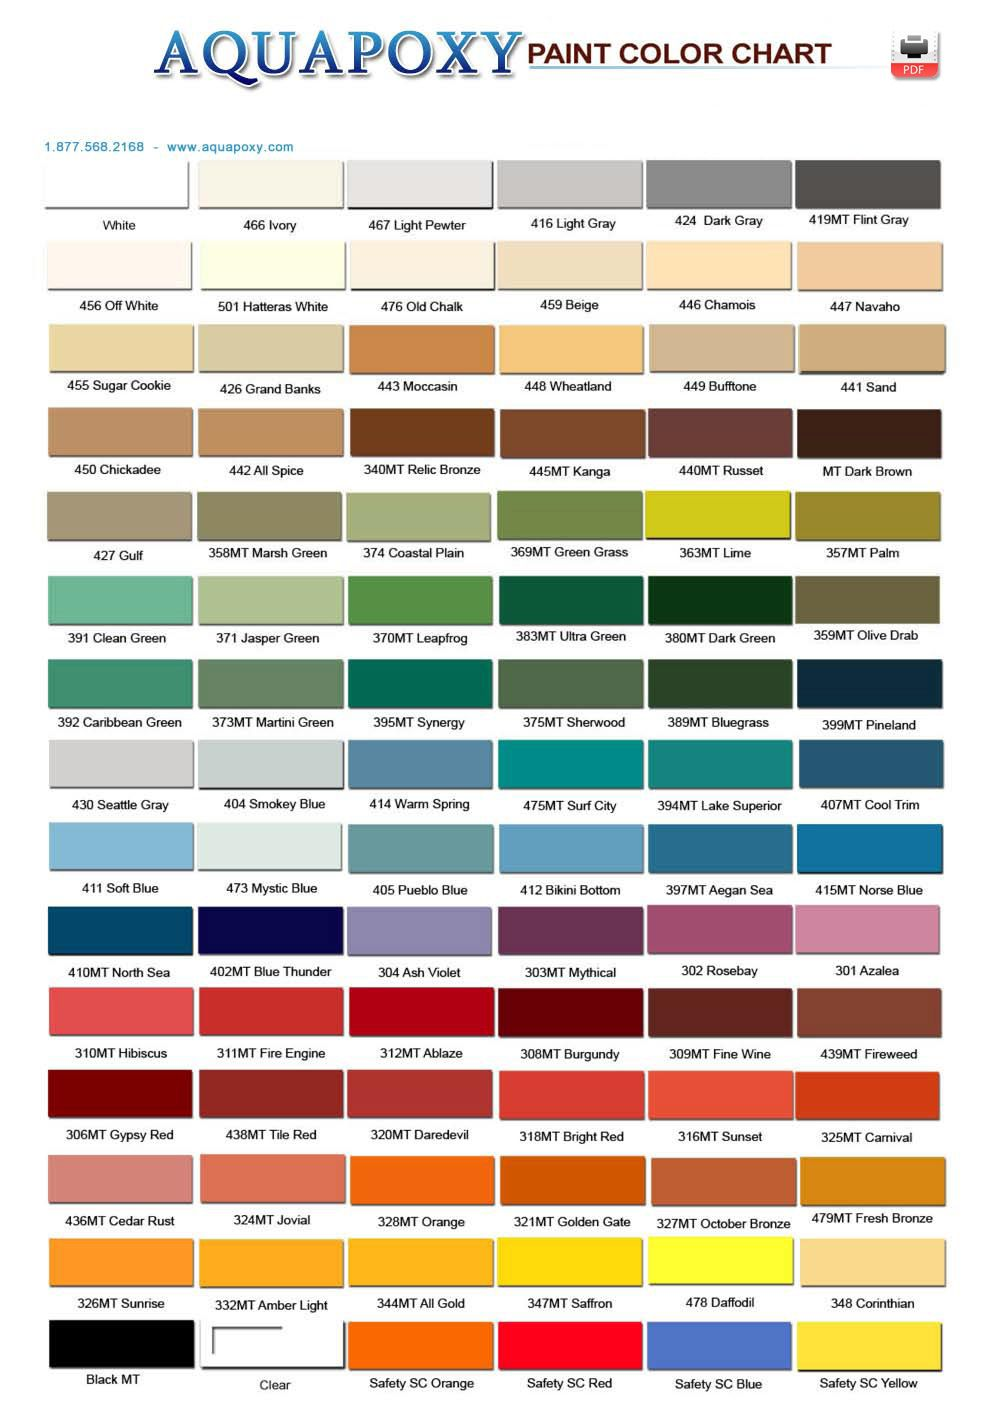 Aquapoxy Paint Color Chart. Can be used on laminate or formica ...